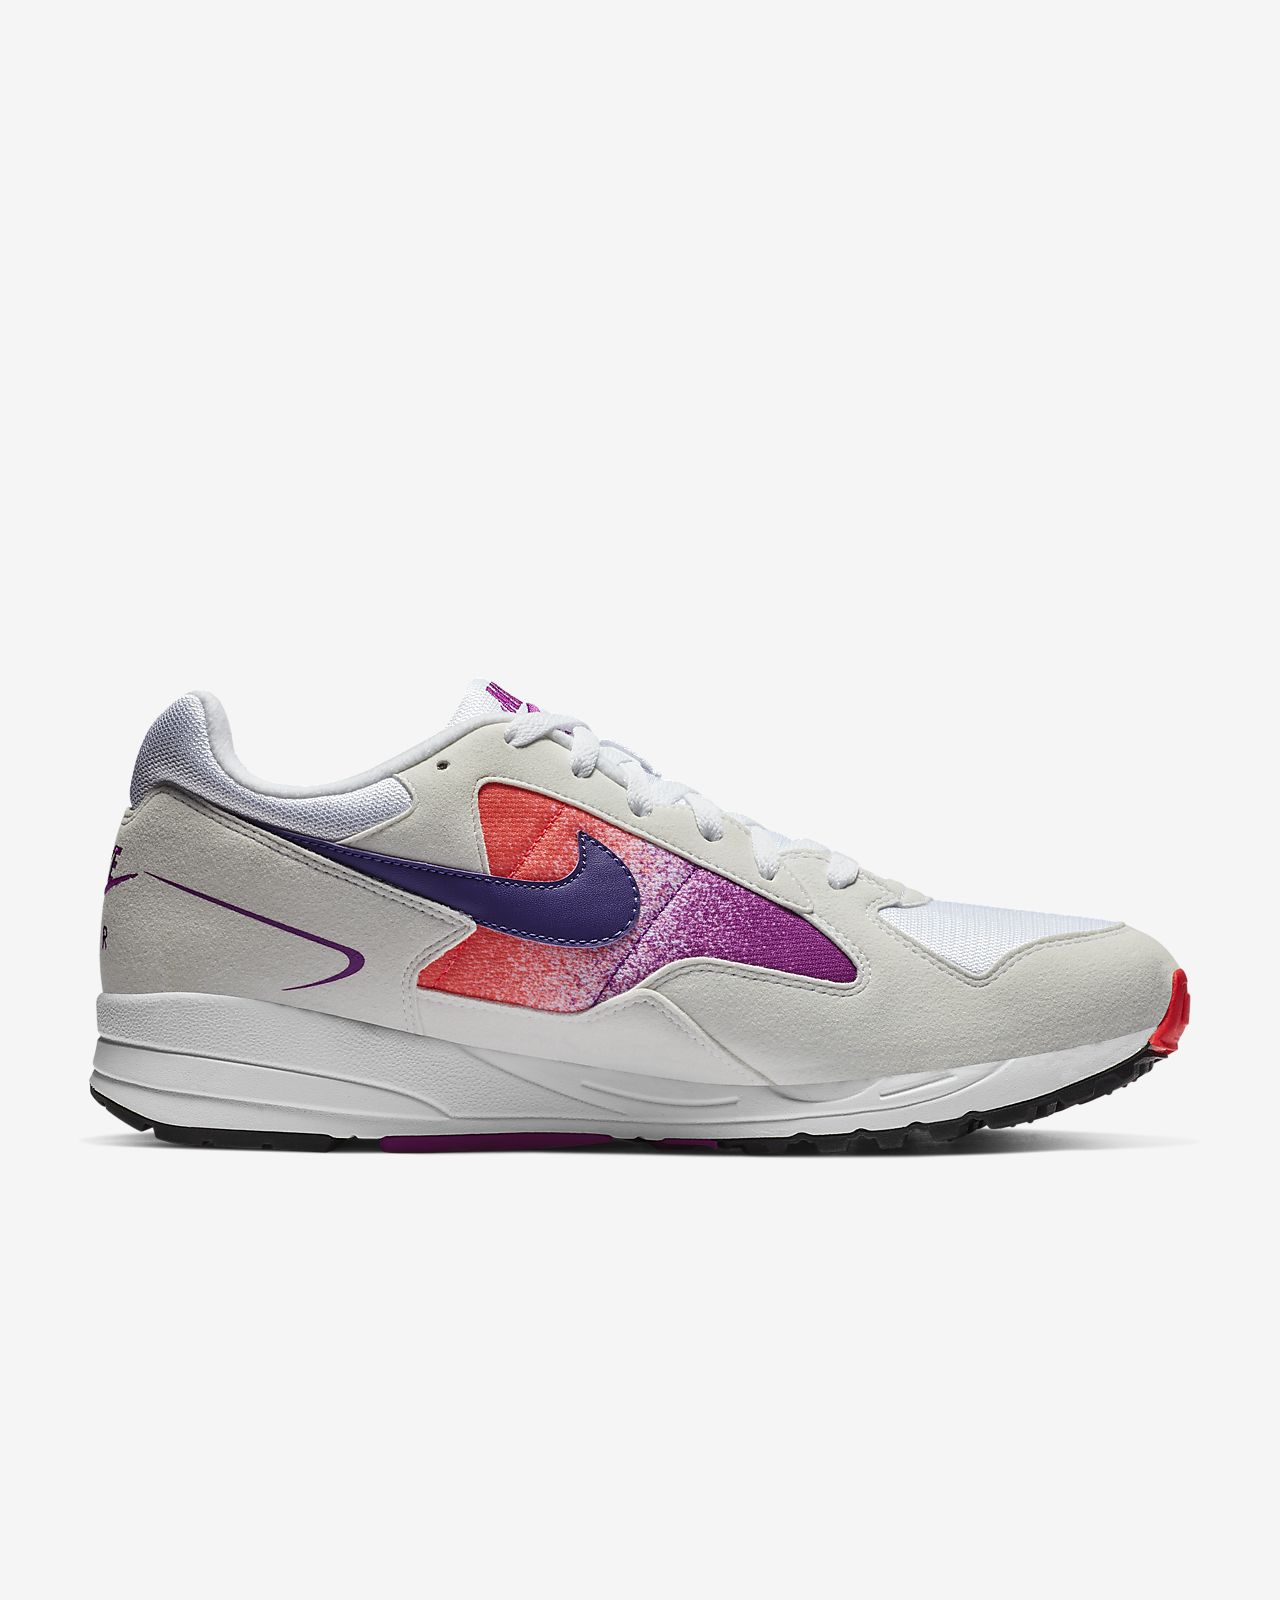 new product 4a461 c0b46 ... Nike Air Skylon II Men s Shoe